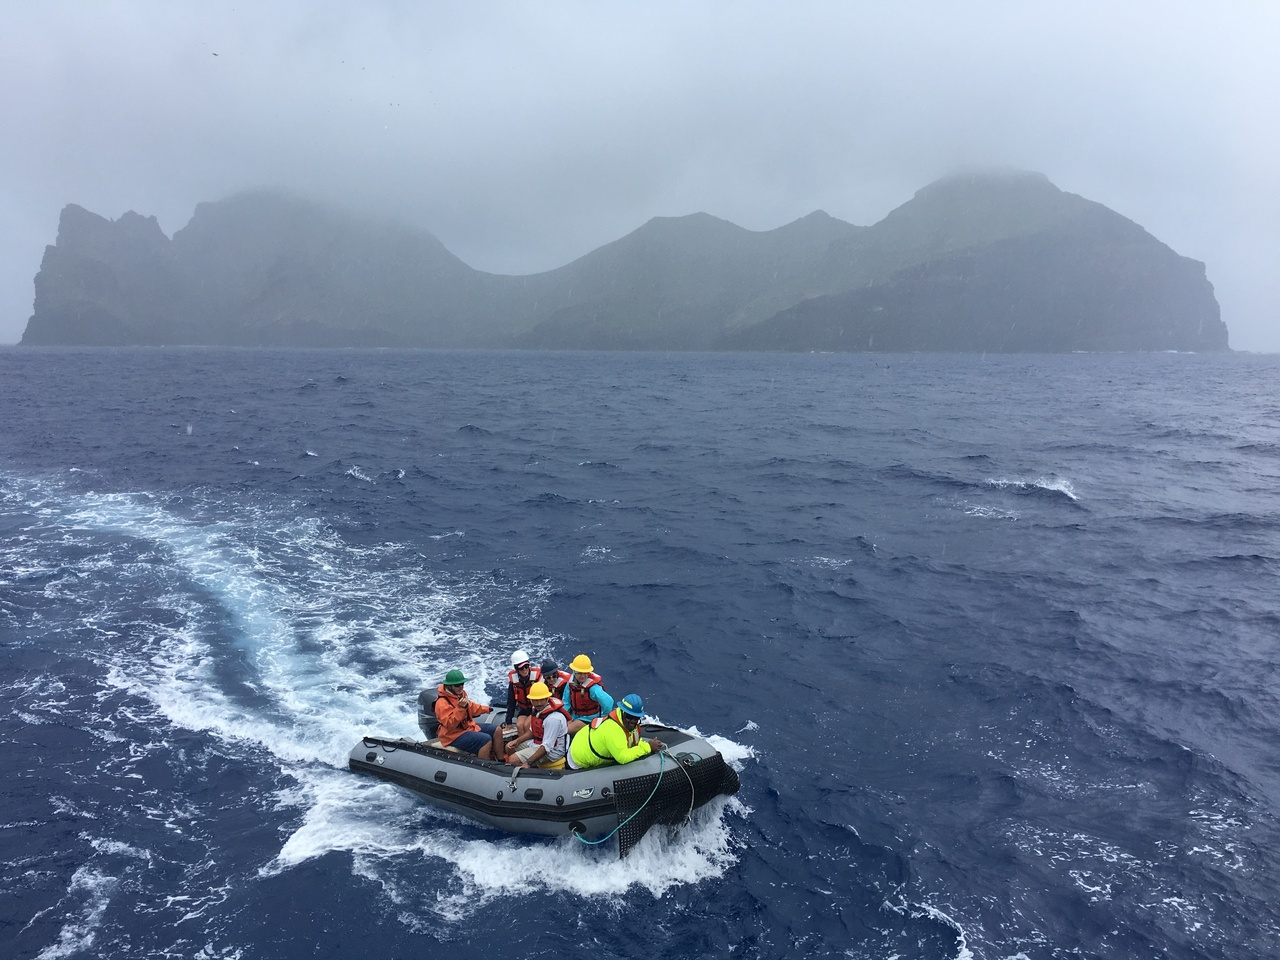 The small boat returns to NOAA Ship Oscar Elton Sette after a rainy but successful day on Nihoa surveying for Hawaiian monk seals